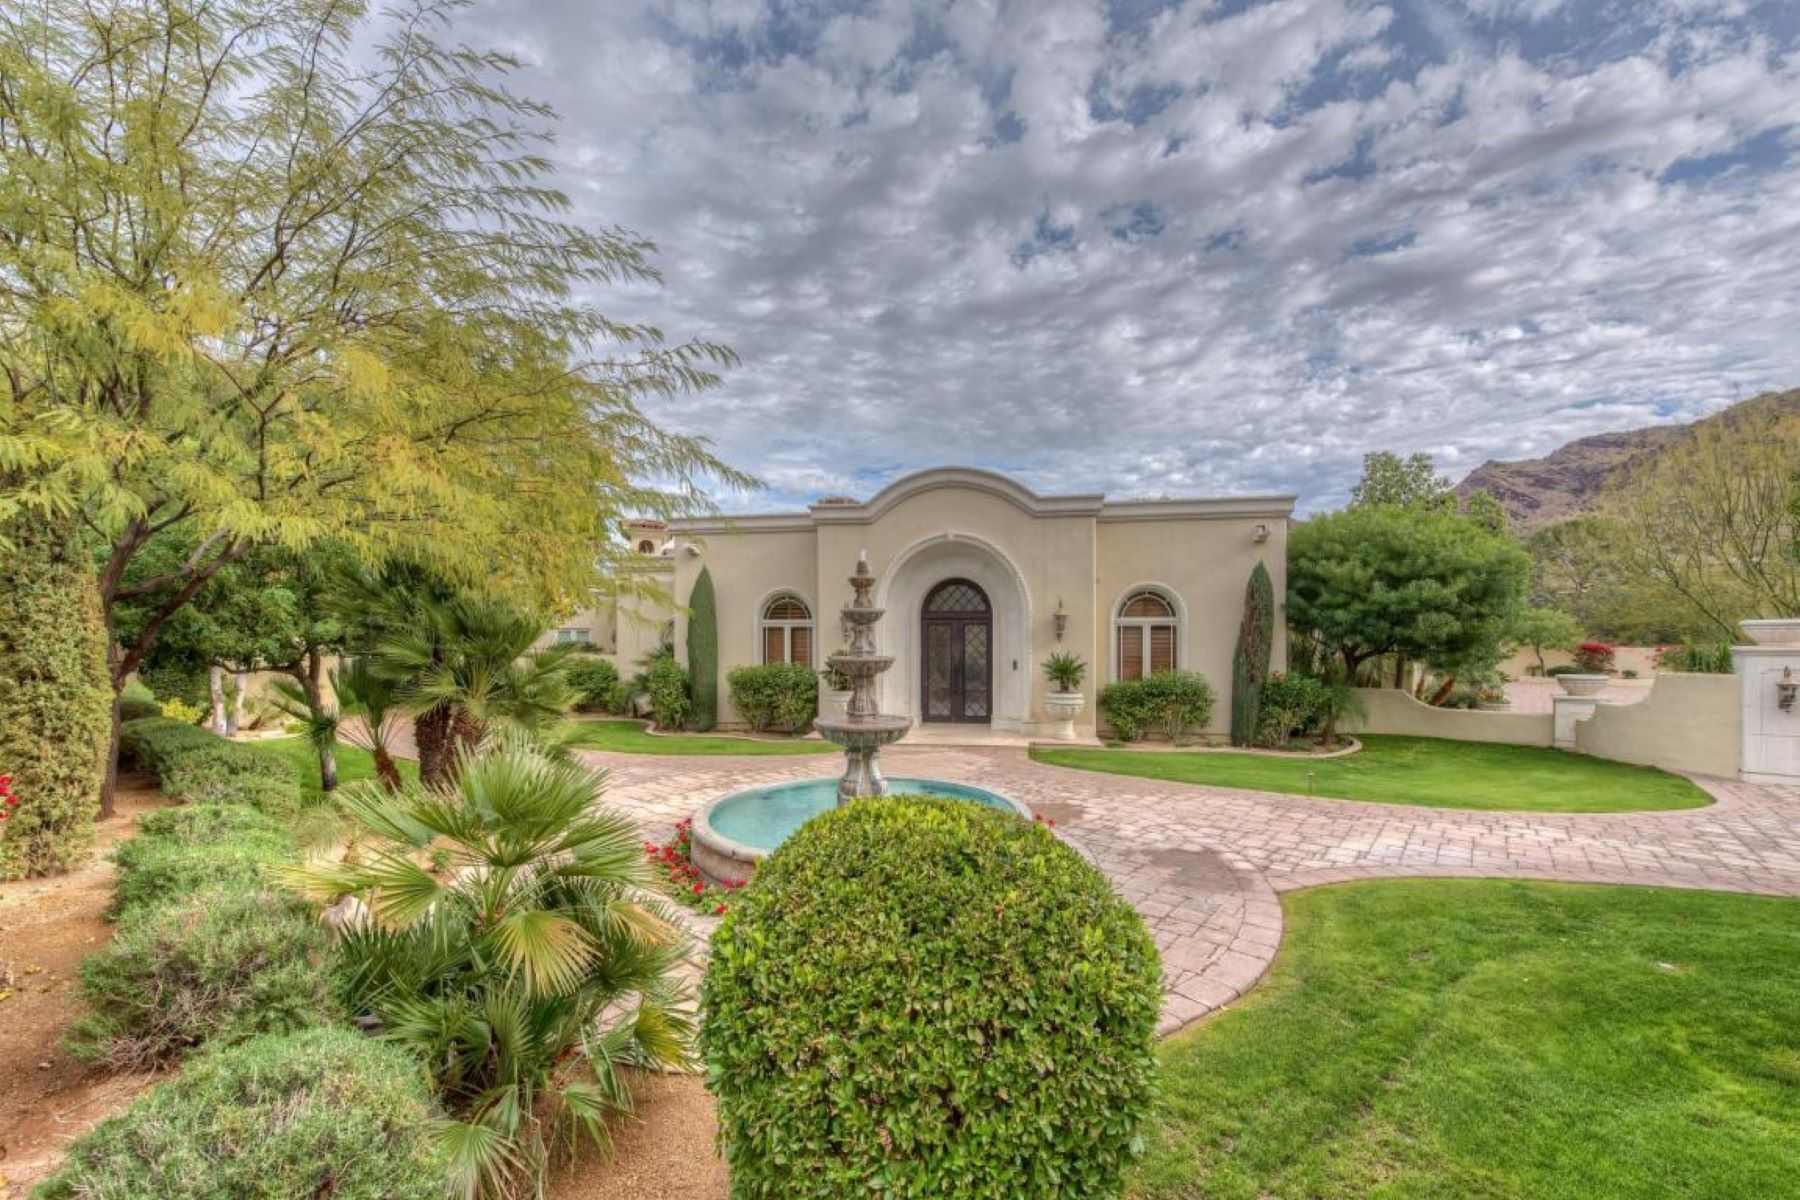 Single Family Home for Sale at gorgeous Mediterranean estate 4900 E DESERT FAIRWAYS DRIVE, Paradise Valley, Arizona, 85253 United States